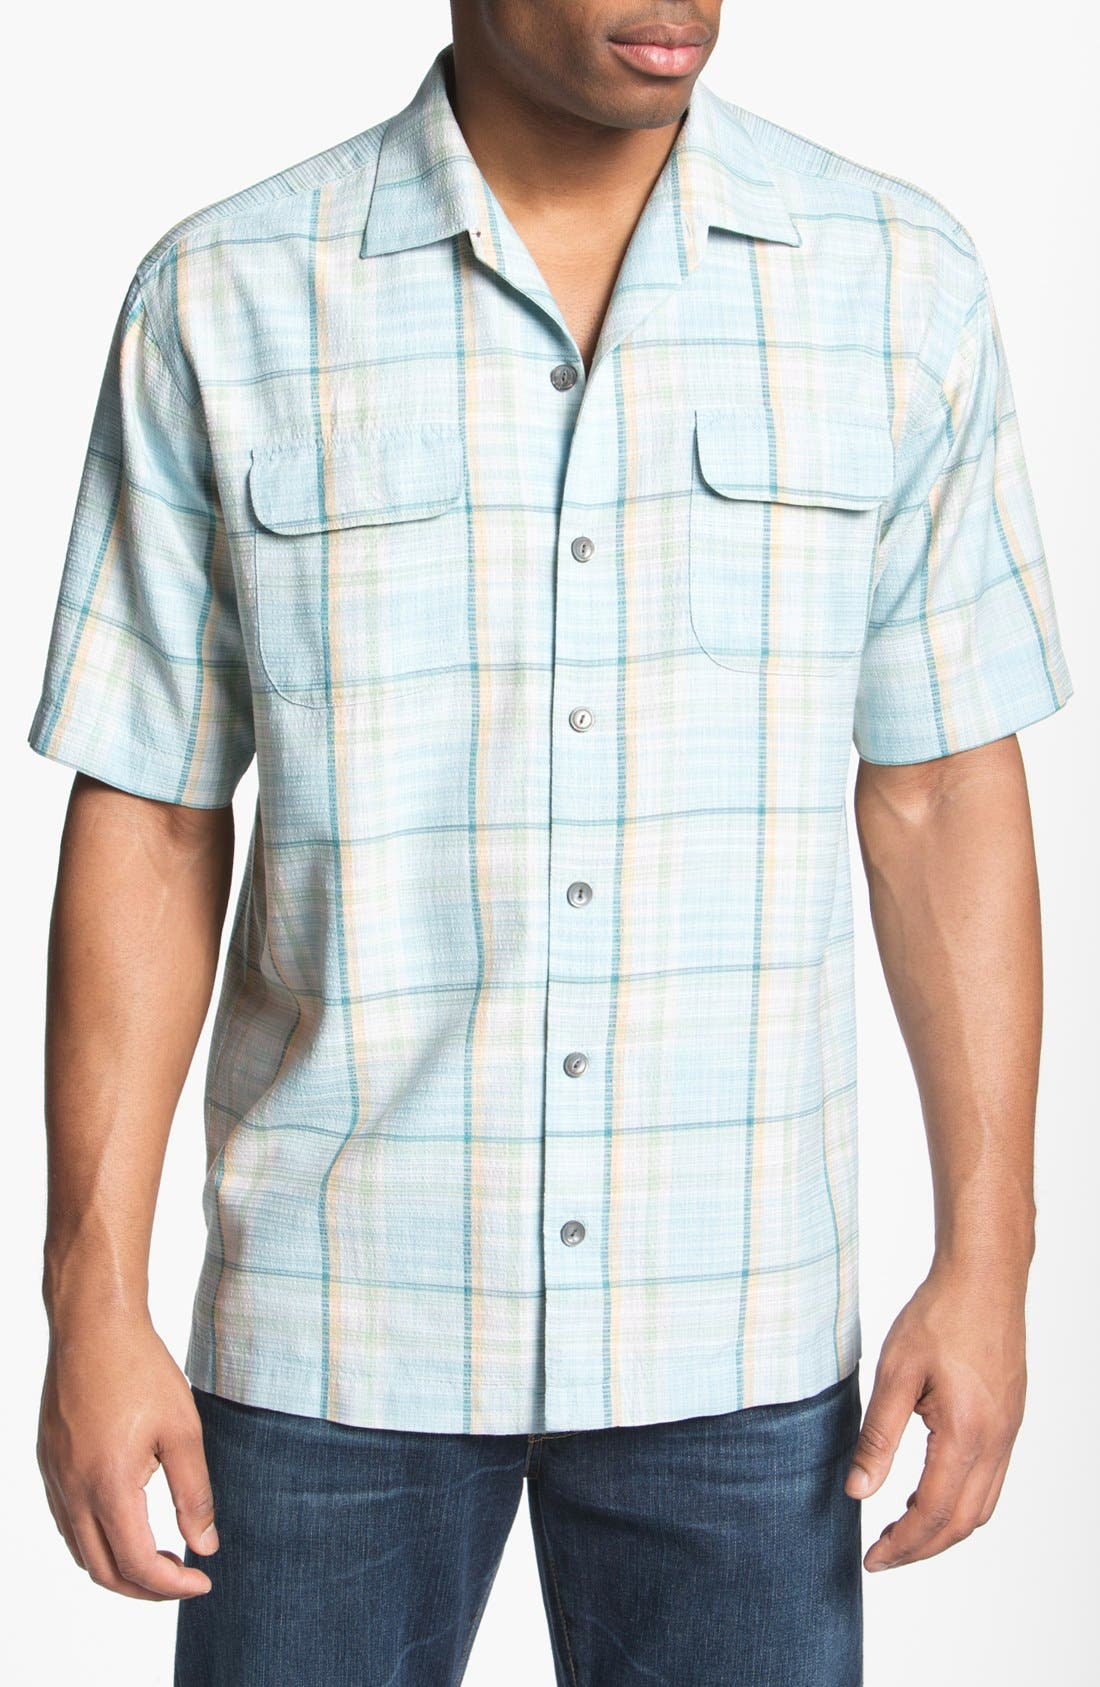 Alternate Image 1 Selected - Tommy Bahama 'Plaid Manners' Campshirt